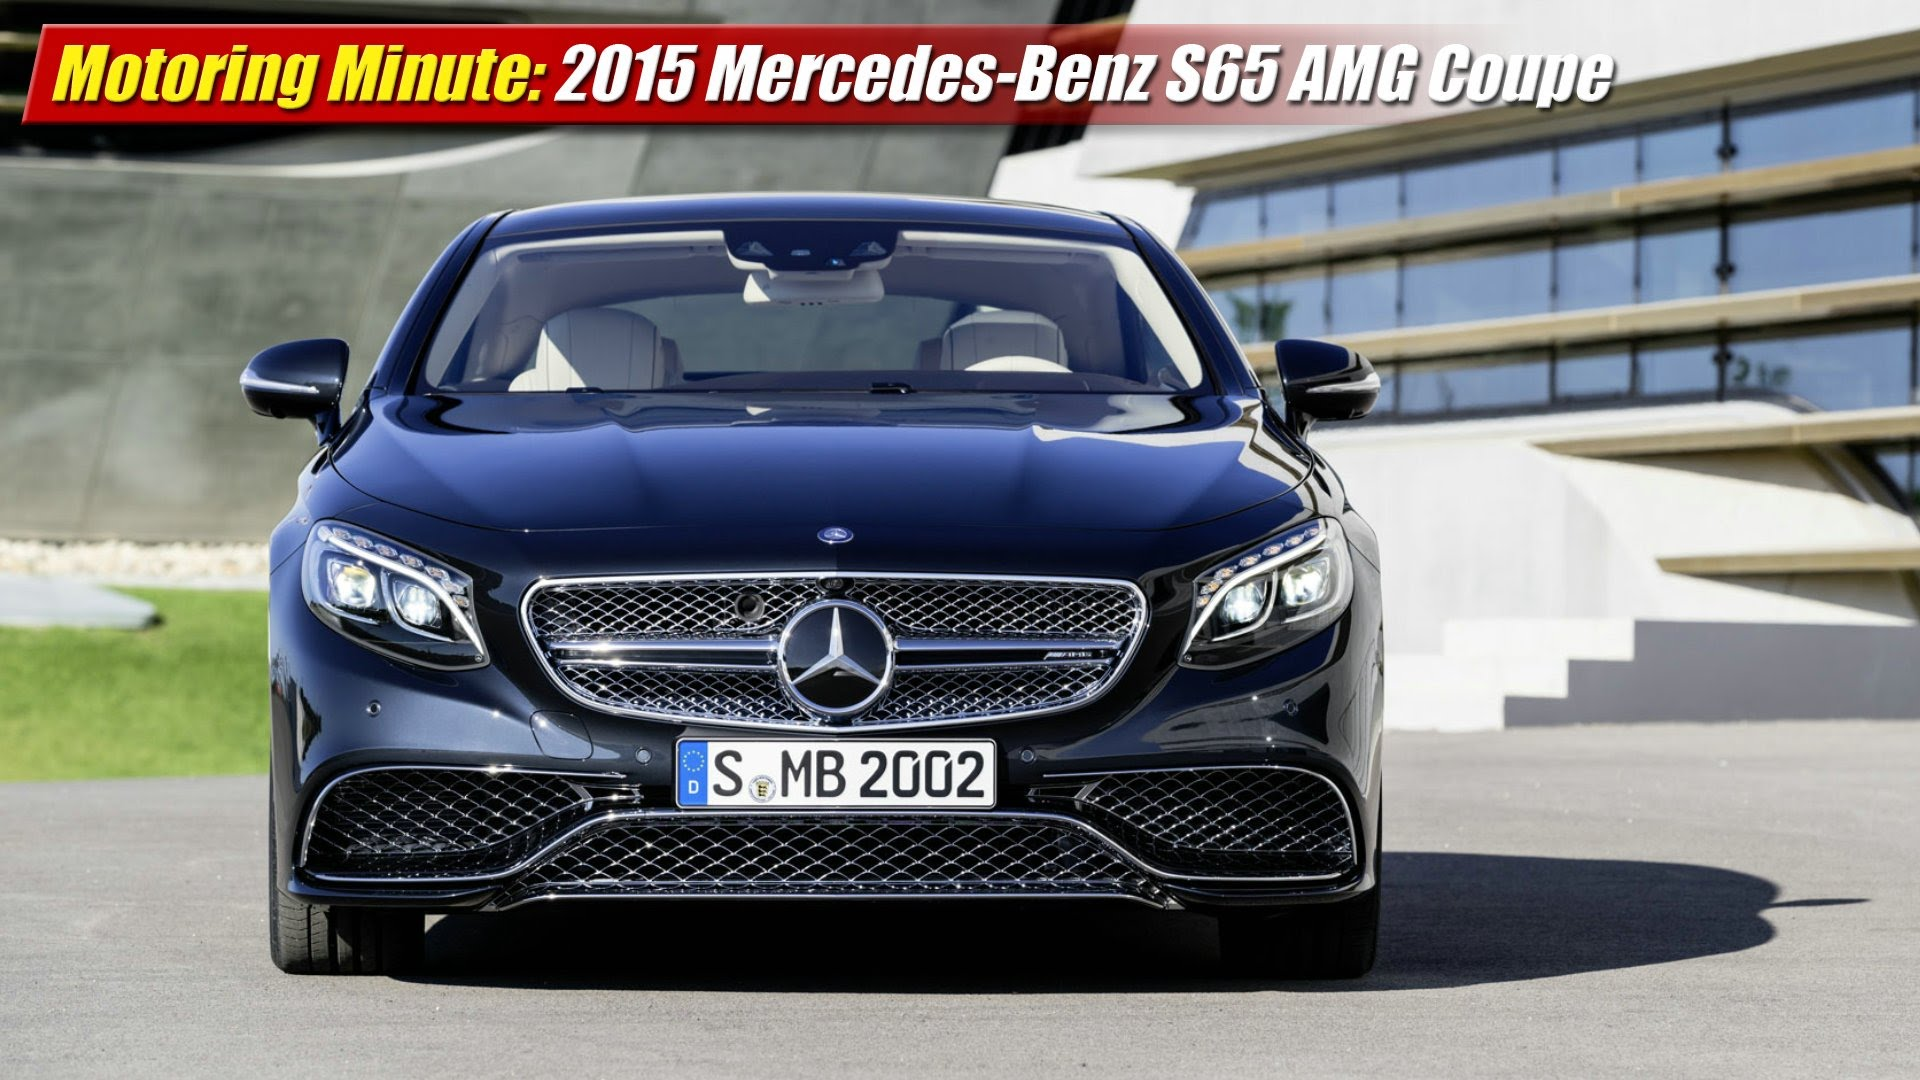 Motoring minute 2015 mercedes benz s65 amg coupe for Mercedes benz s65 amg 2014